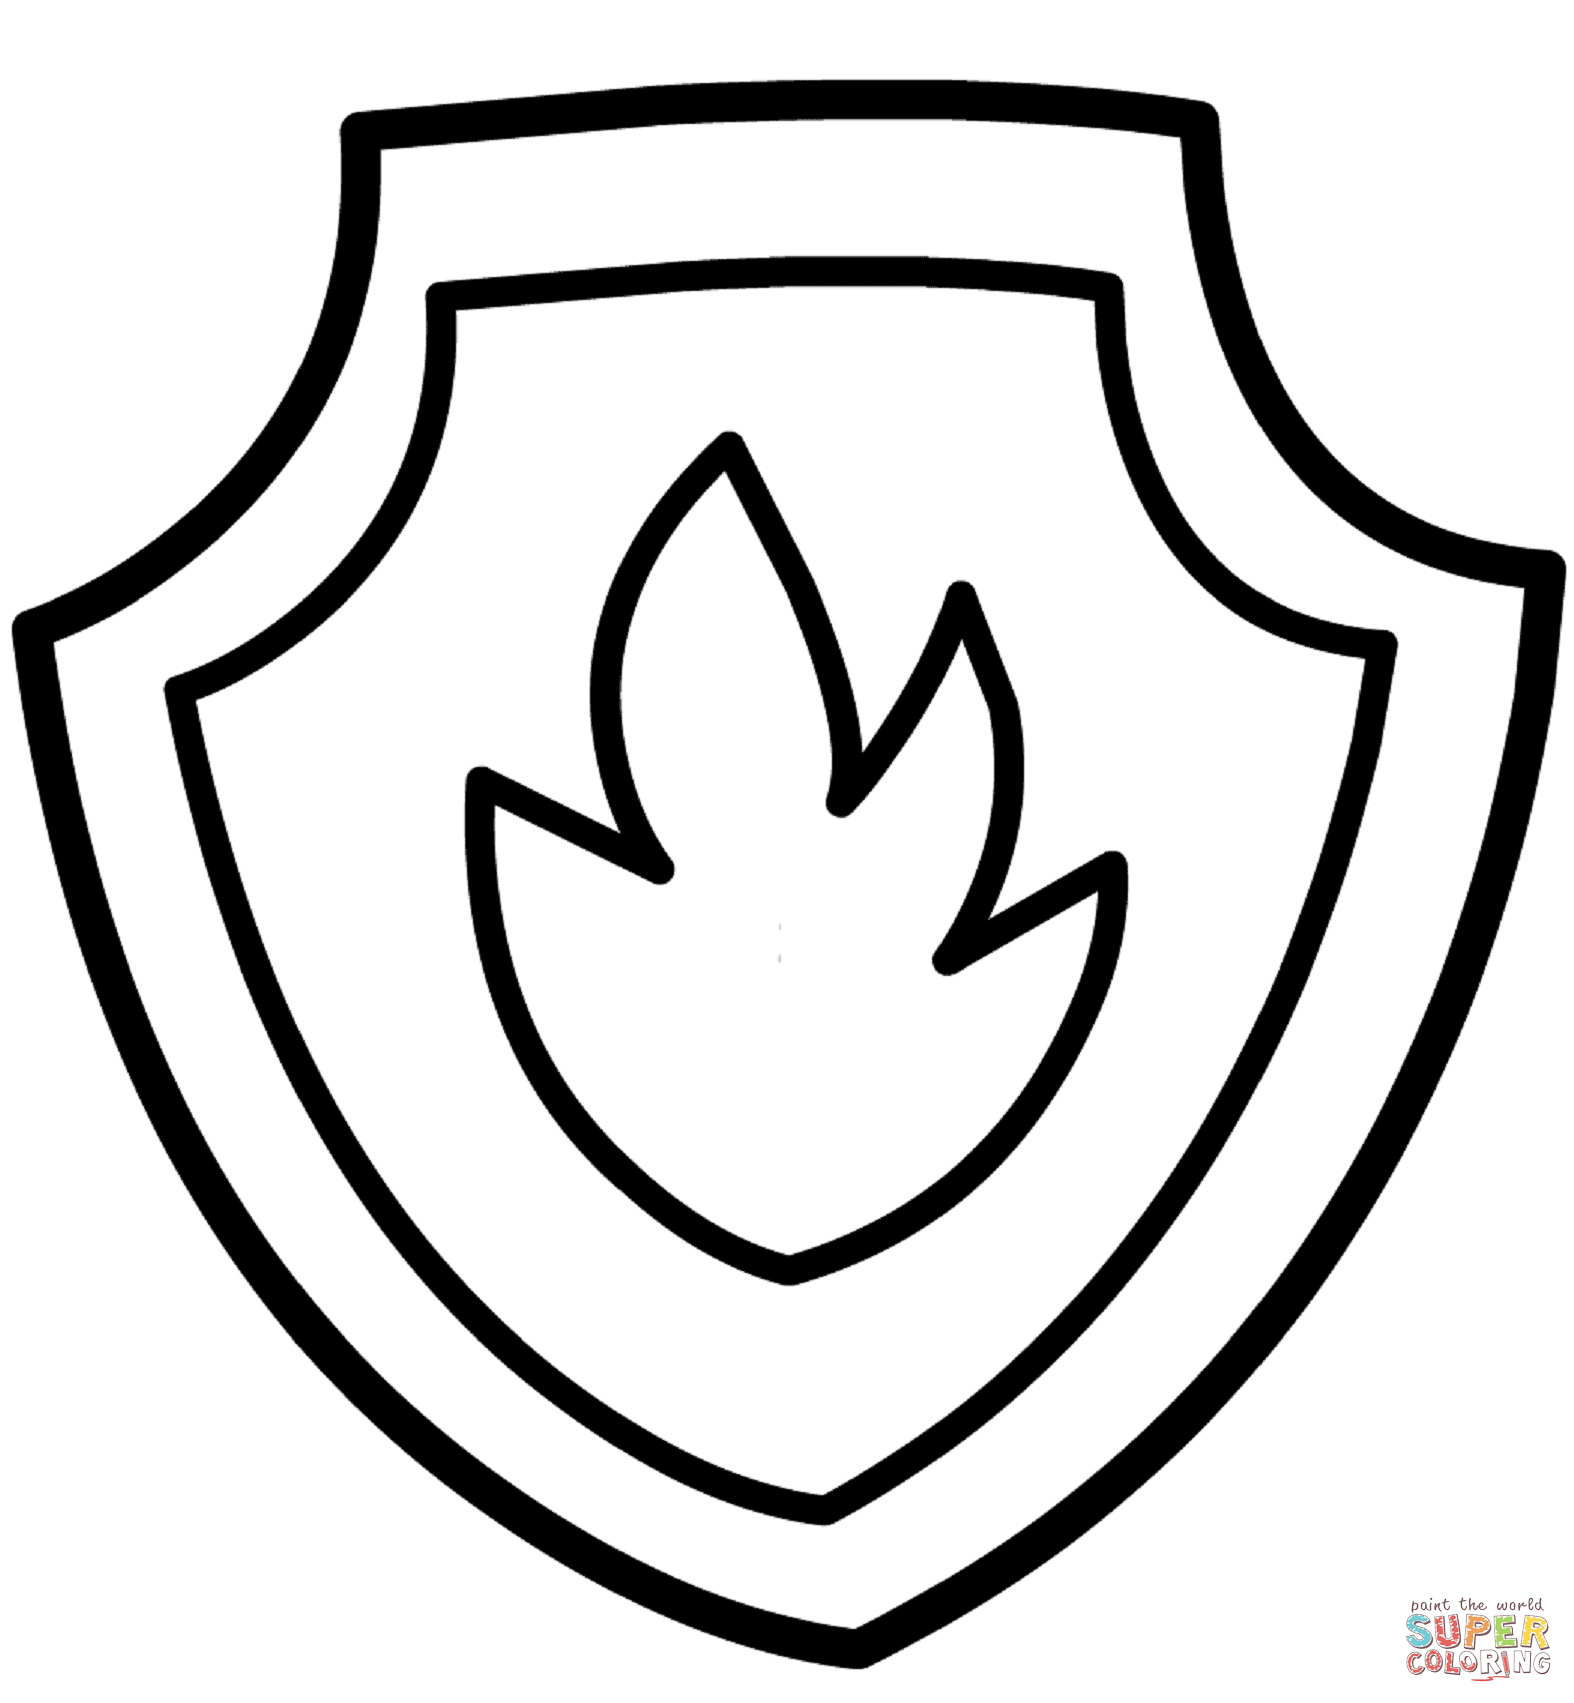 Paw clipart coloring page. Patrol marshall s badge